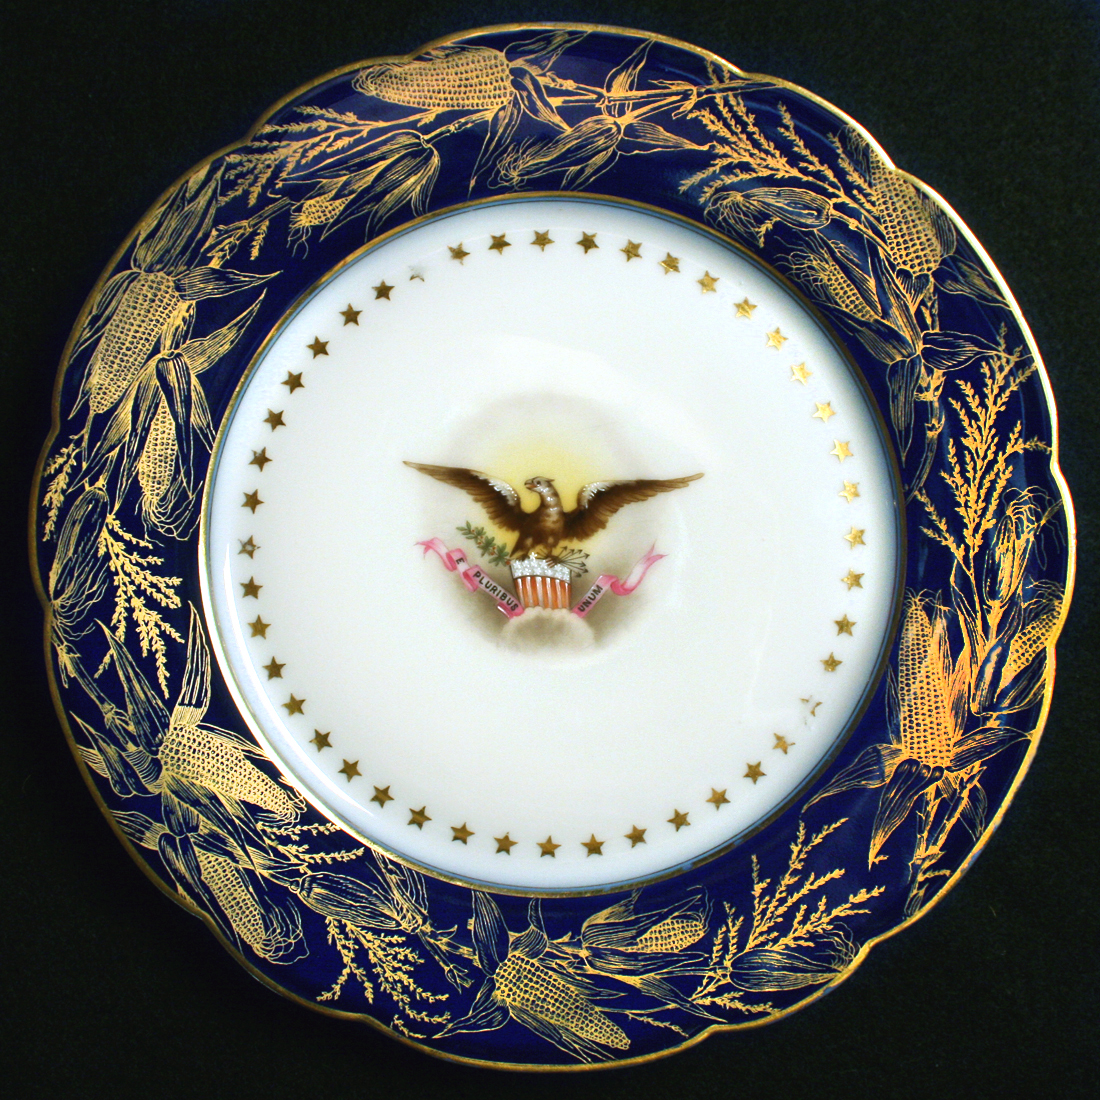 benjamin-harrison-white-house-china-1